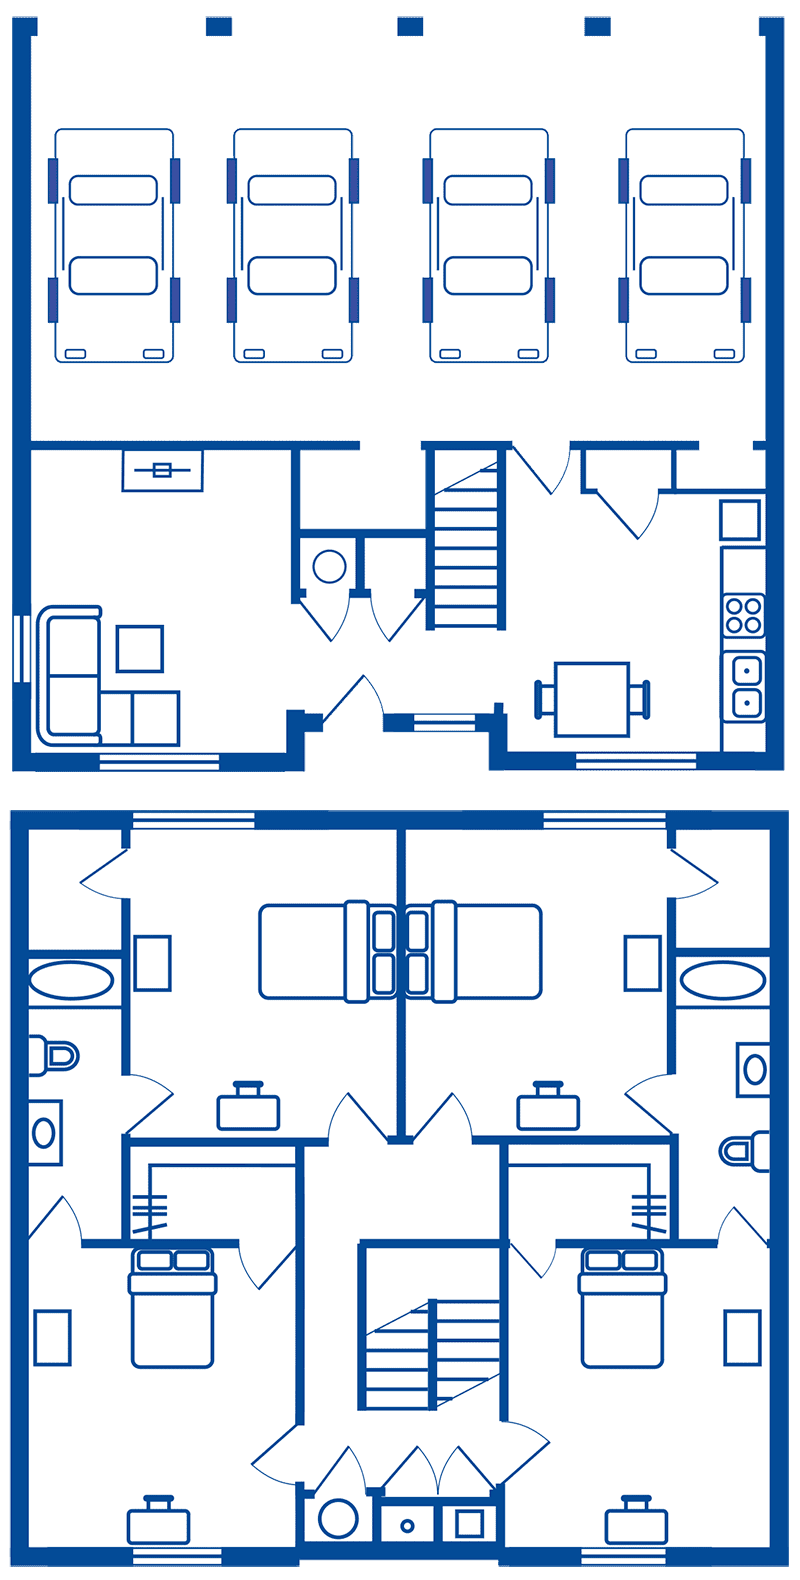 4 Bedroom Apartments Sacramento